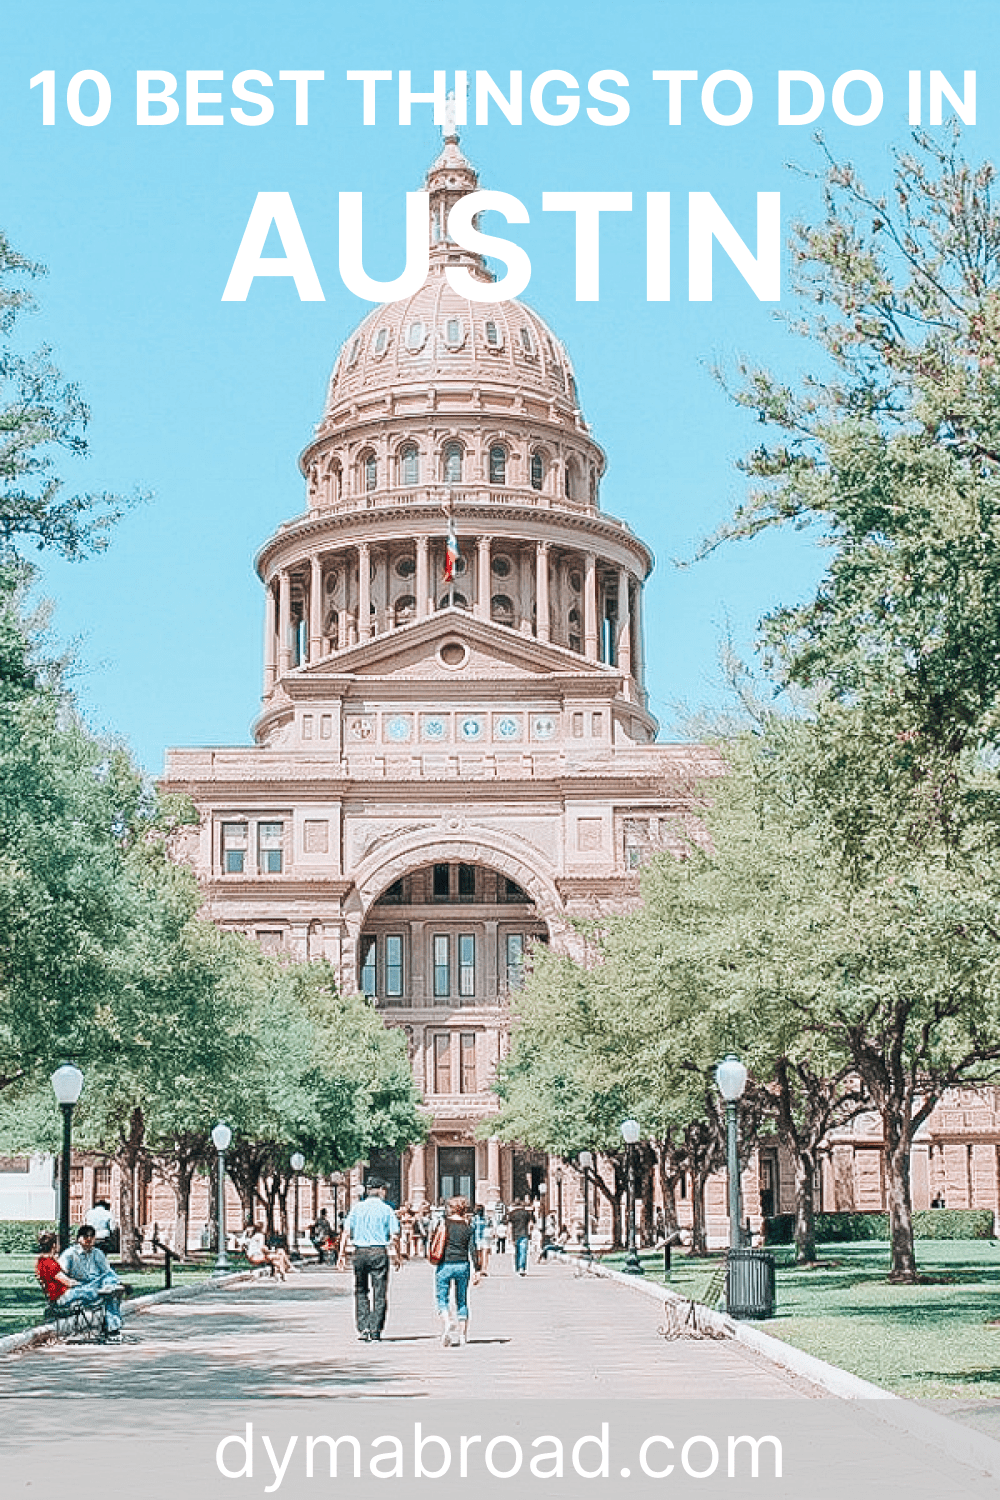 Best things to do in Austin Pinterest Image